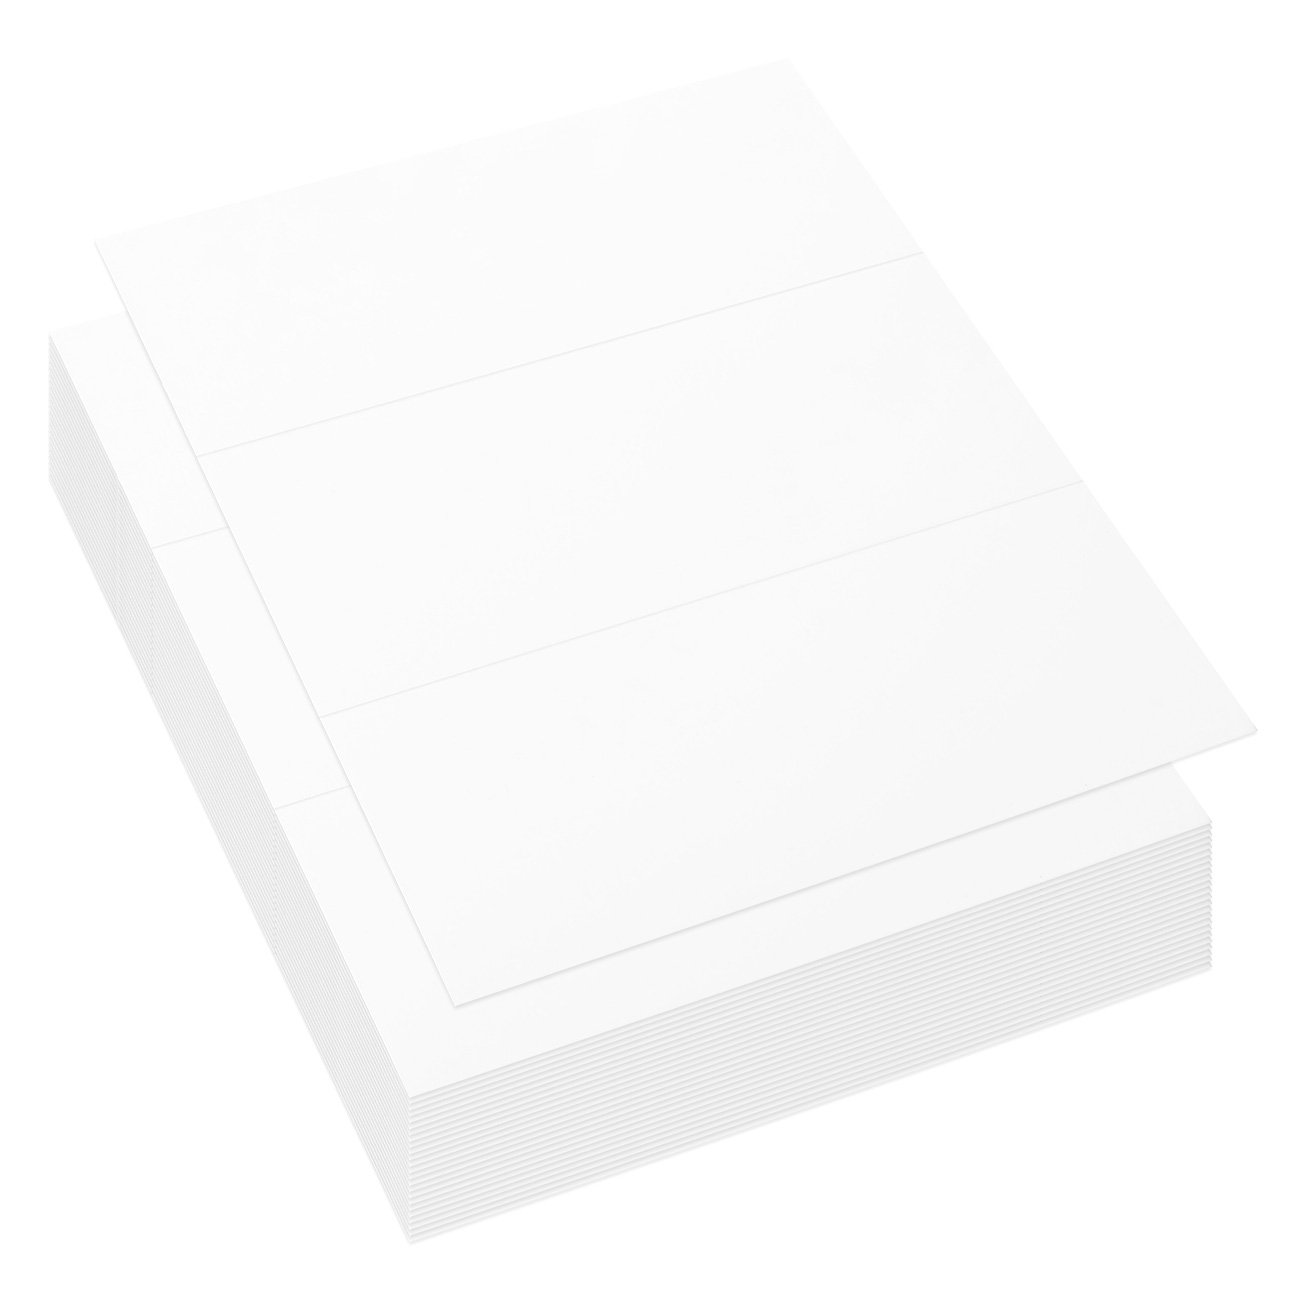 100 Sheets Trifold Brochure Paper - Tri Fold Pamphlet and Flyer Paper for Inkjet and Laser Printers, Brochure Printer Paper, 11 x 8.5 Inches